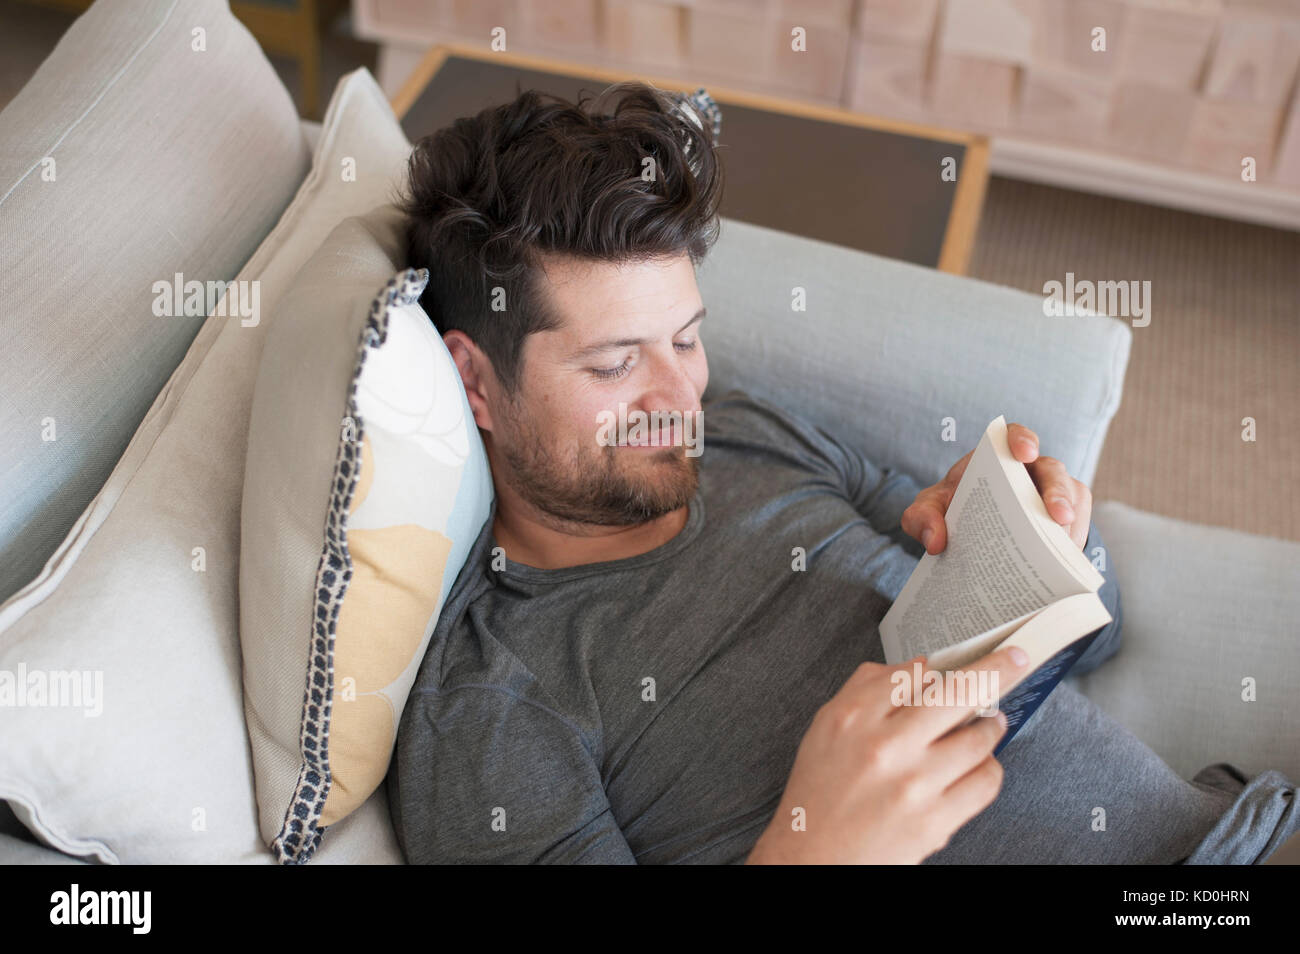 Mid adult man relaxing on sofa, reading book, elevated view - Stock Image